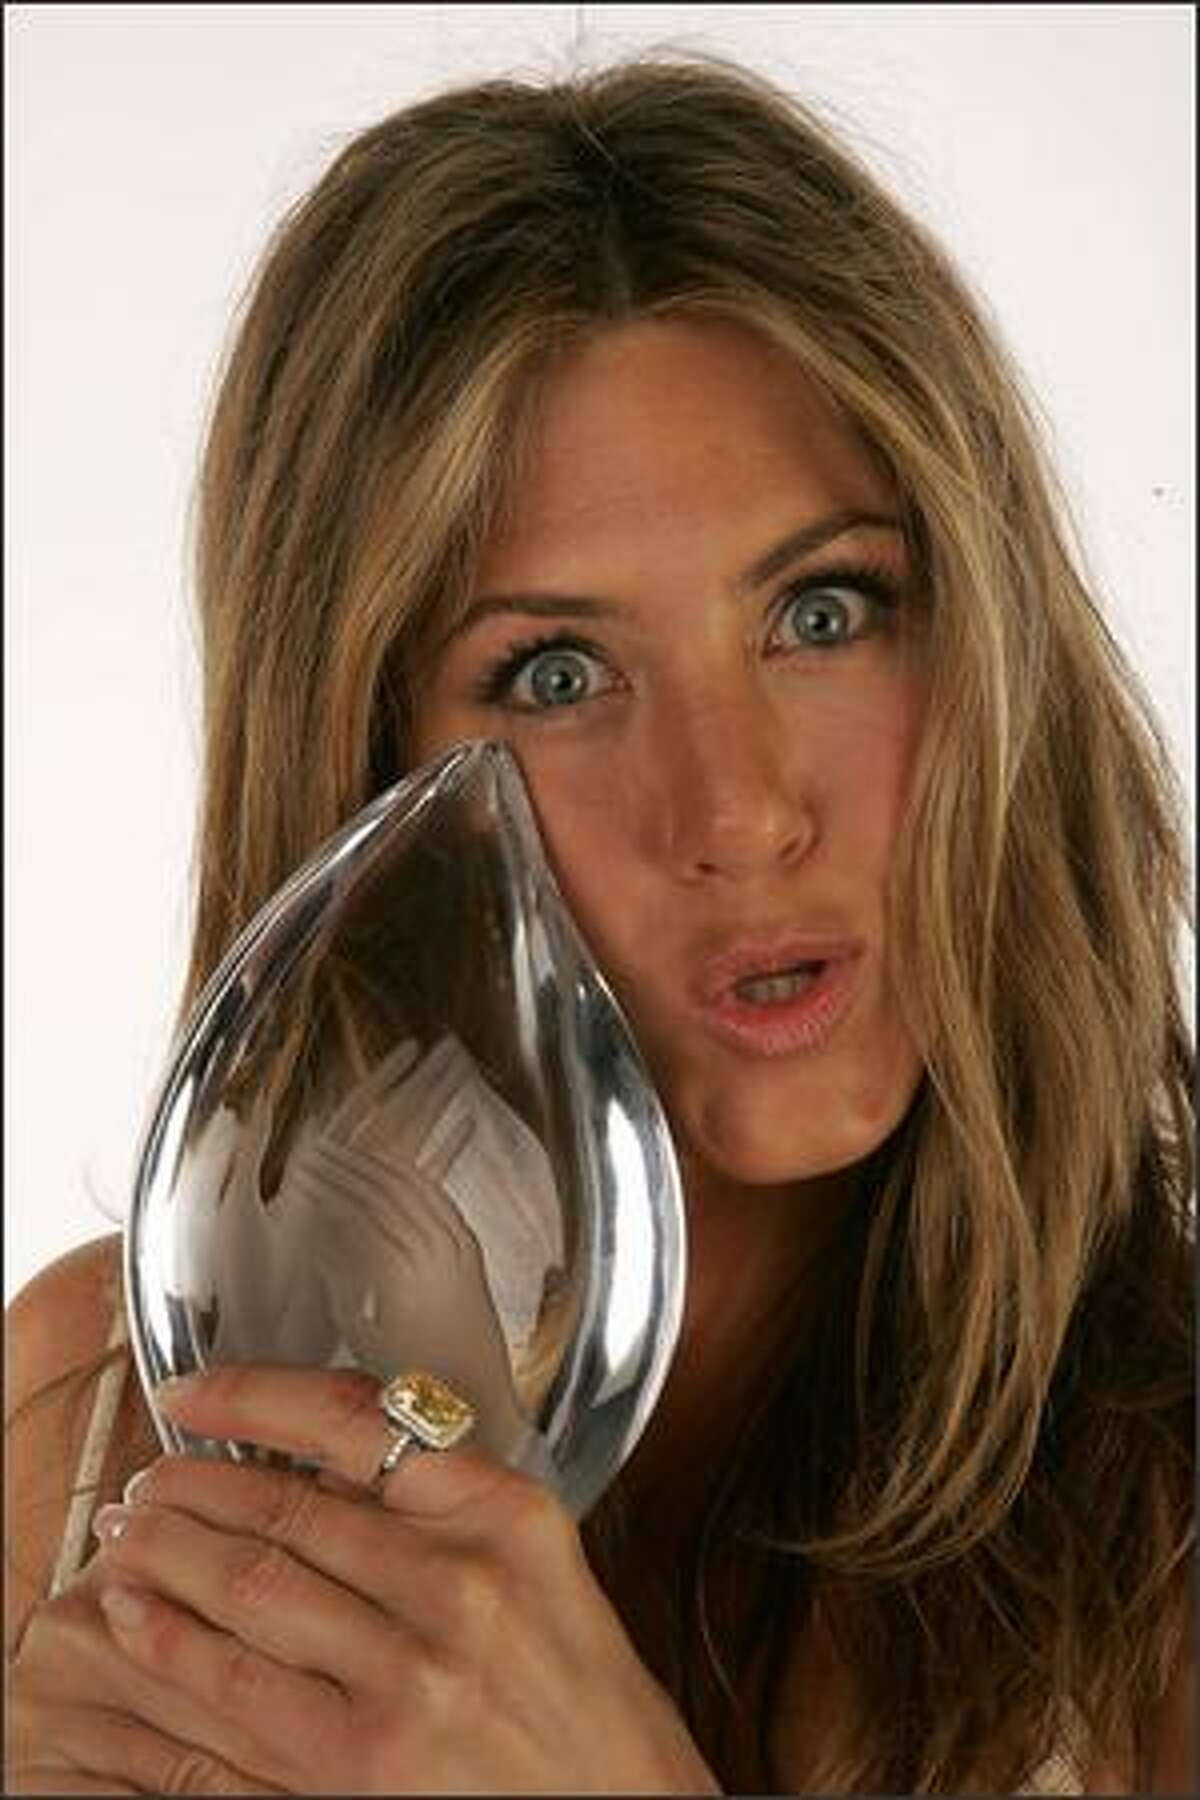 Actress Jennifer Aniston poses in the portrait studio with her Favorite Female Movie Star Award during the 33rd Annual People's Choice Awards held at the Shrine Auditorium on January 9, 2007 in Los Angeles, California.